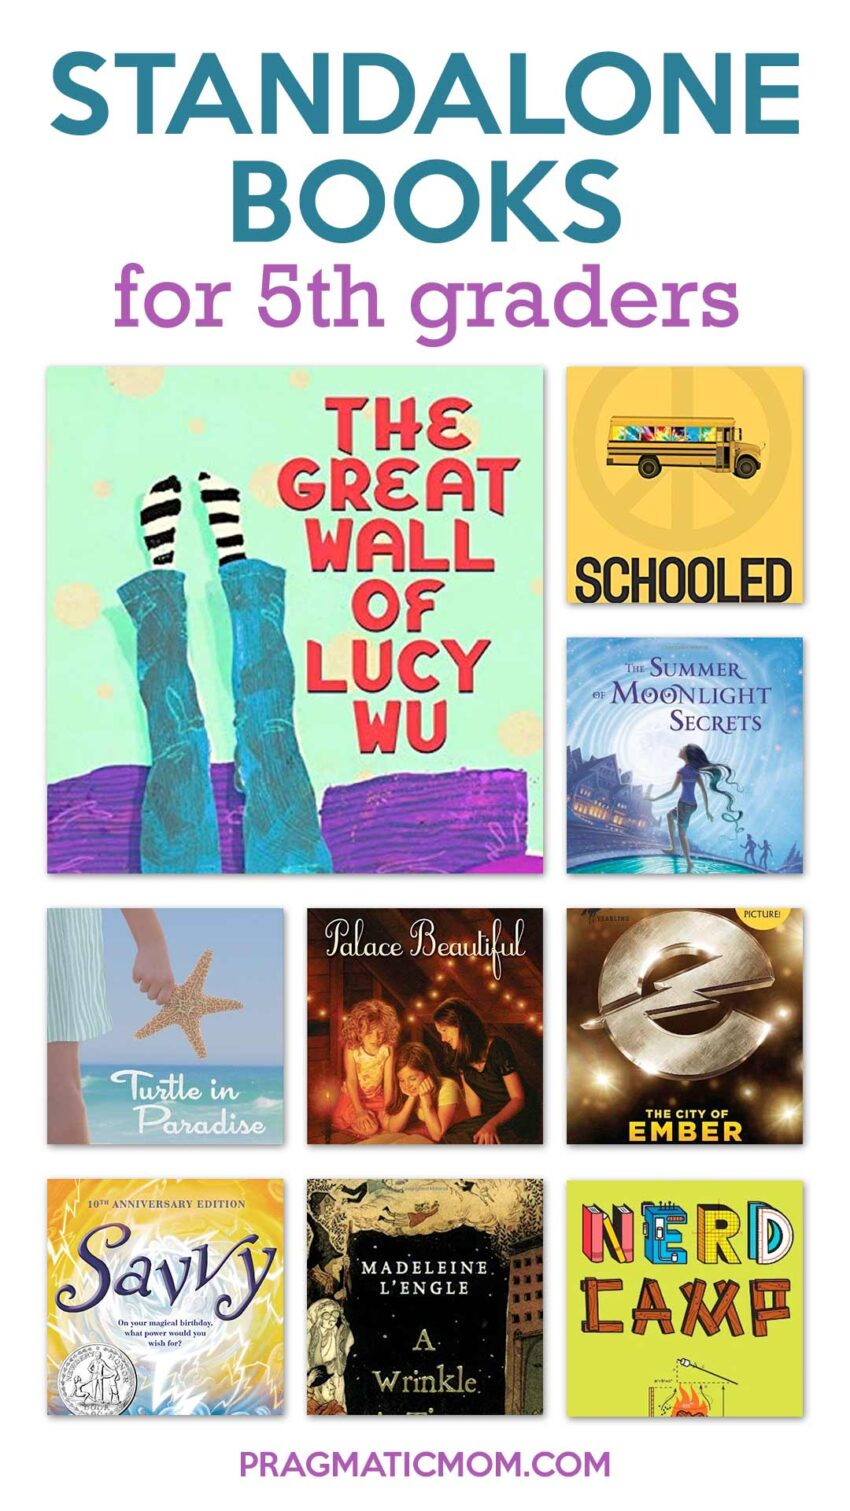 Best Standalone Books for 5th Graders